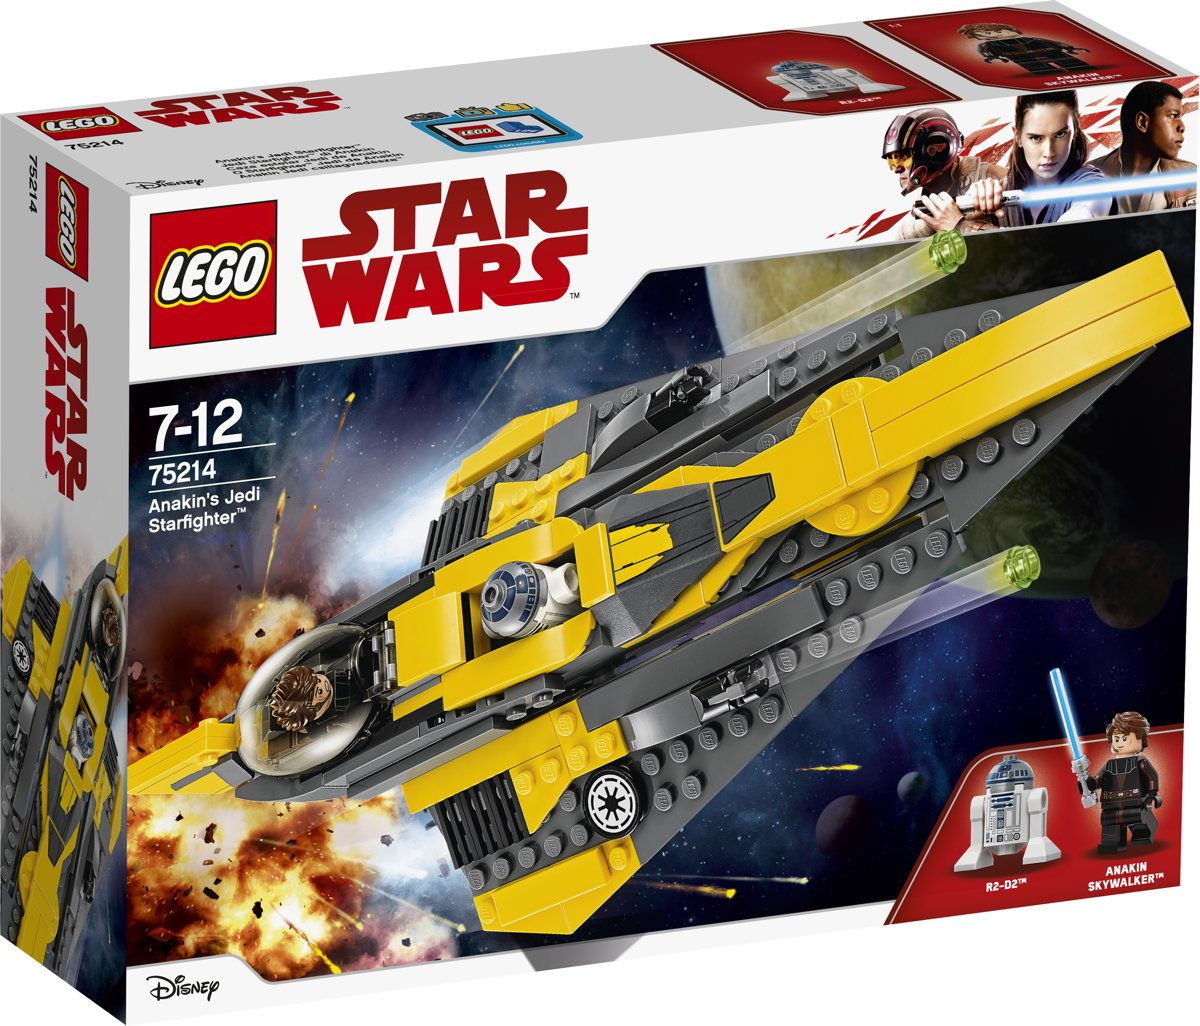 LEGO Star Wars Anakins Jedi Starfighter - 75214